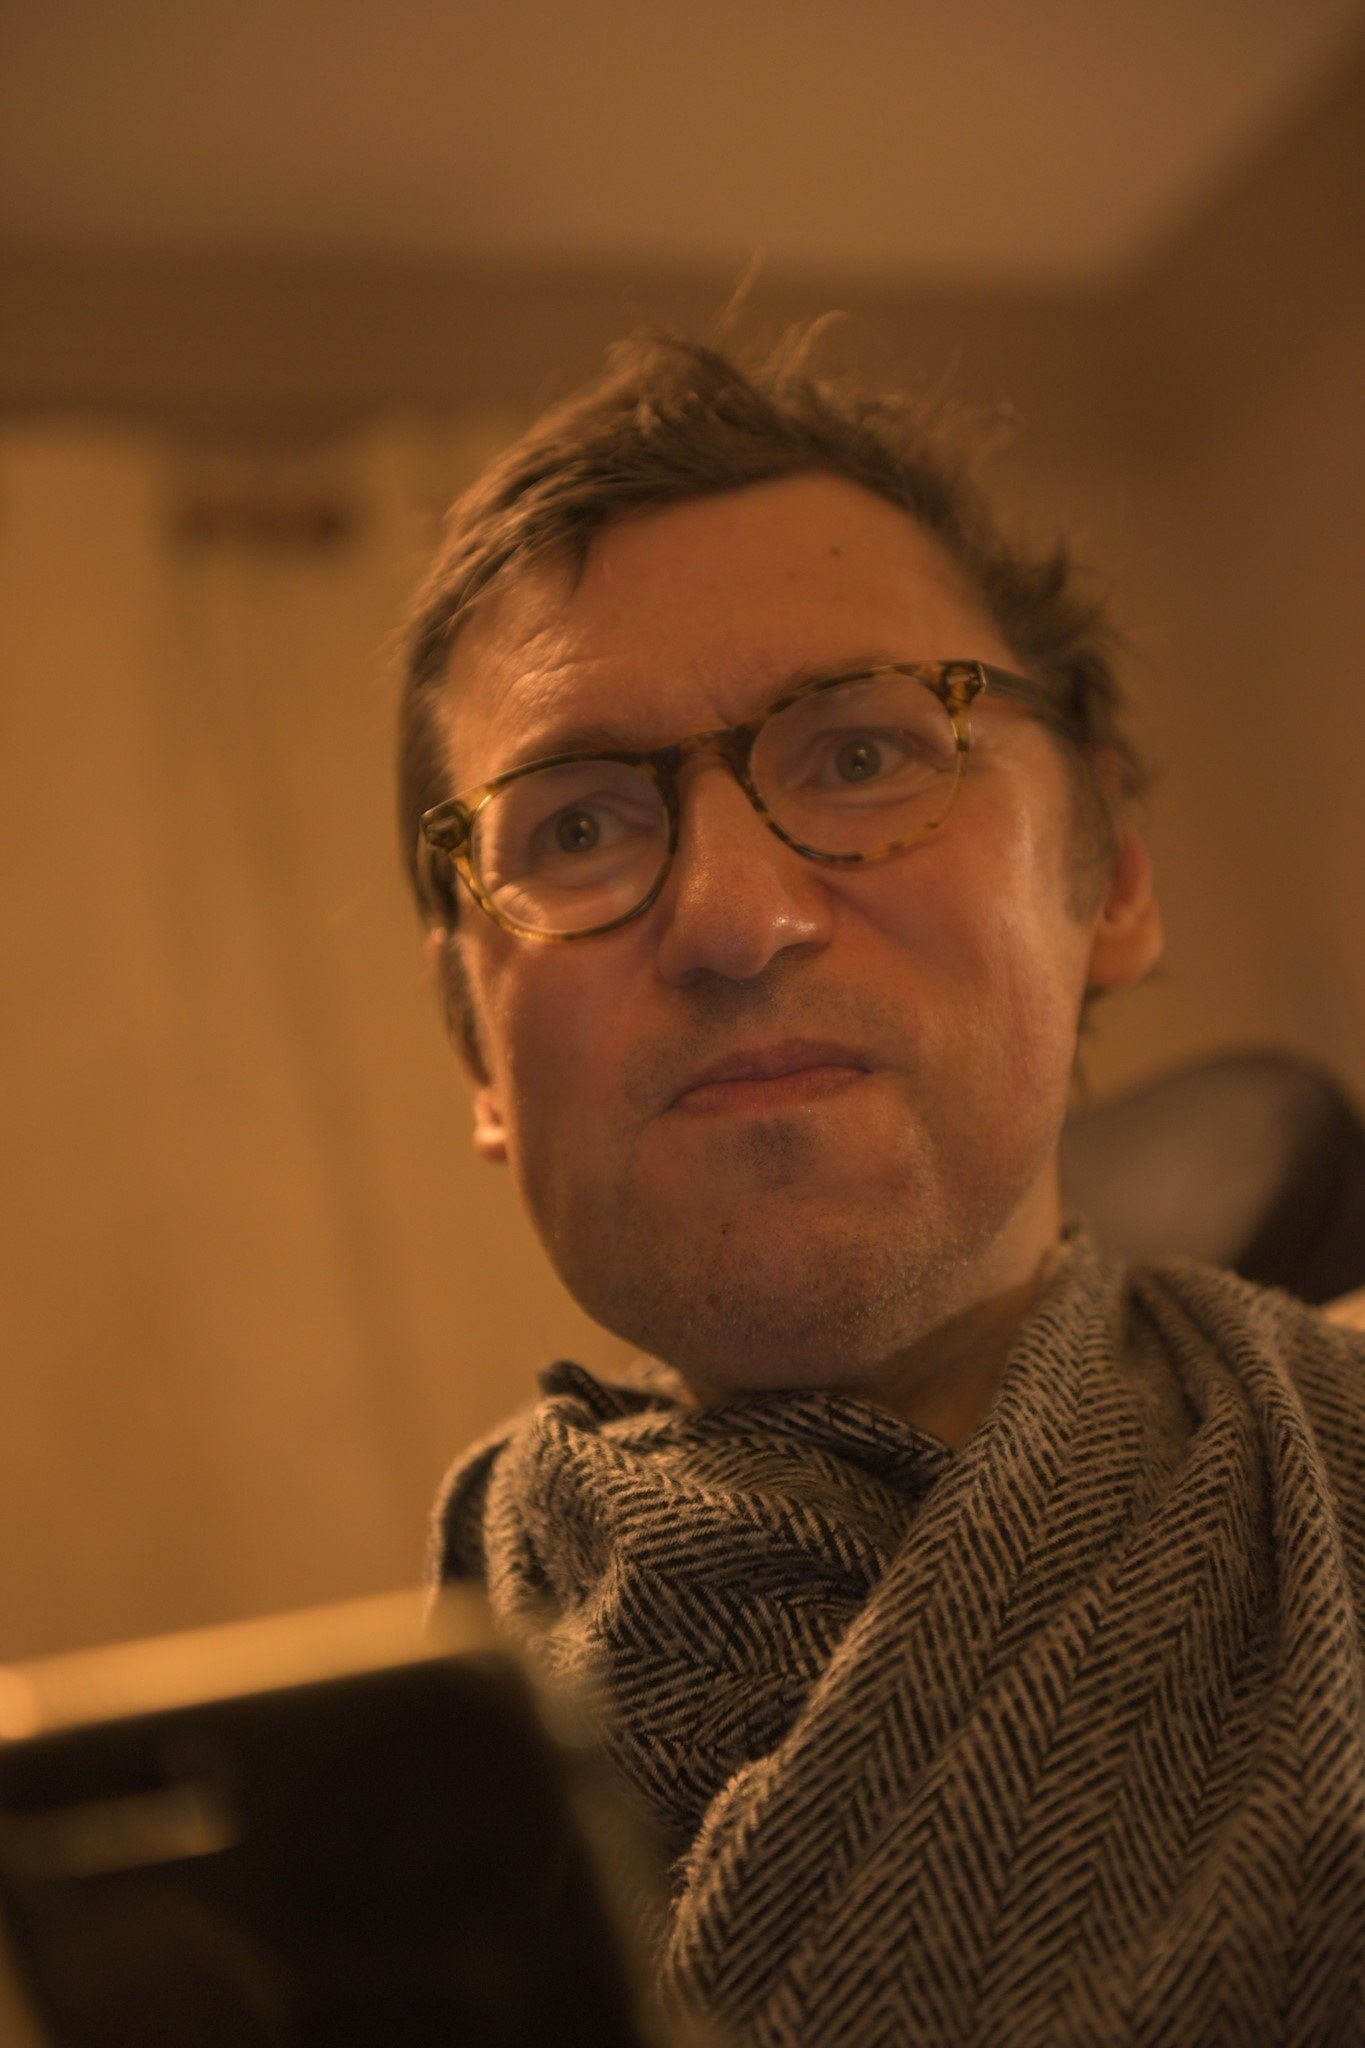 Brown haired, brown eyed male wheelchair user with glasses, wearing patterned grey scarf in lounge. Beige lighting.